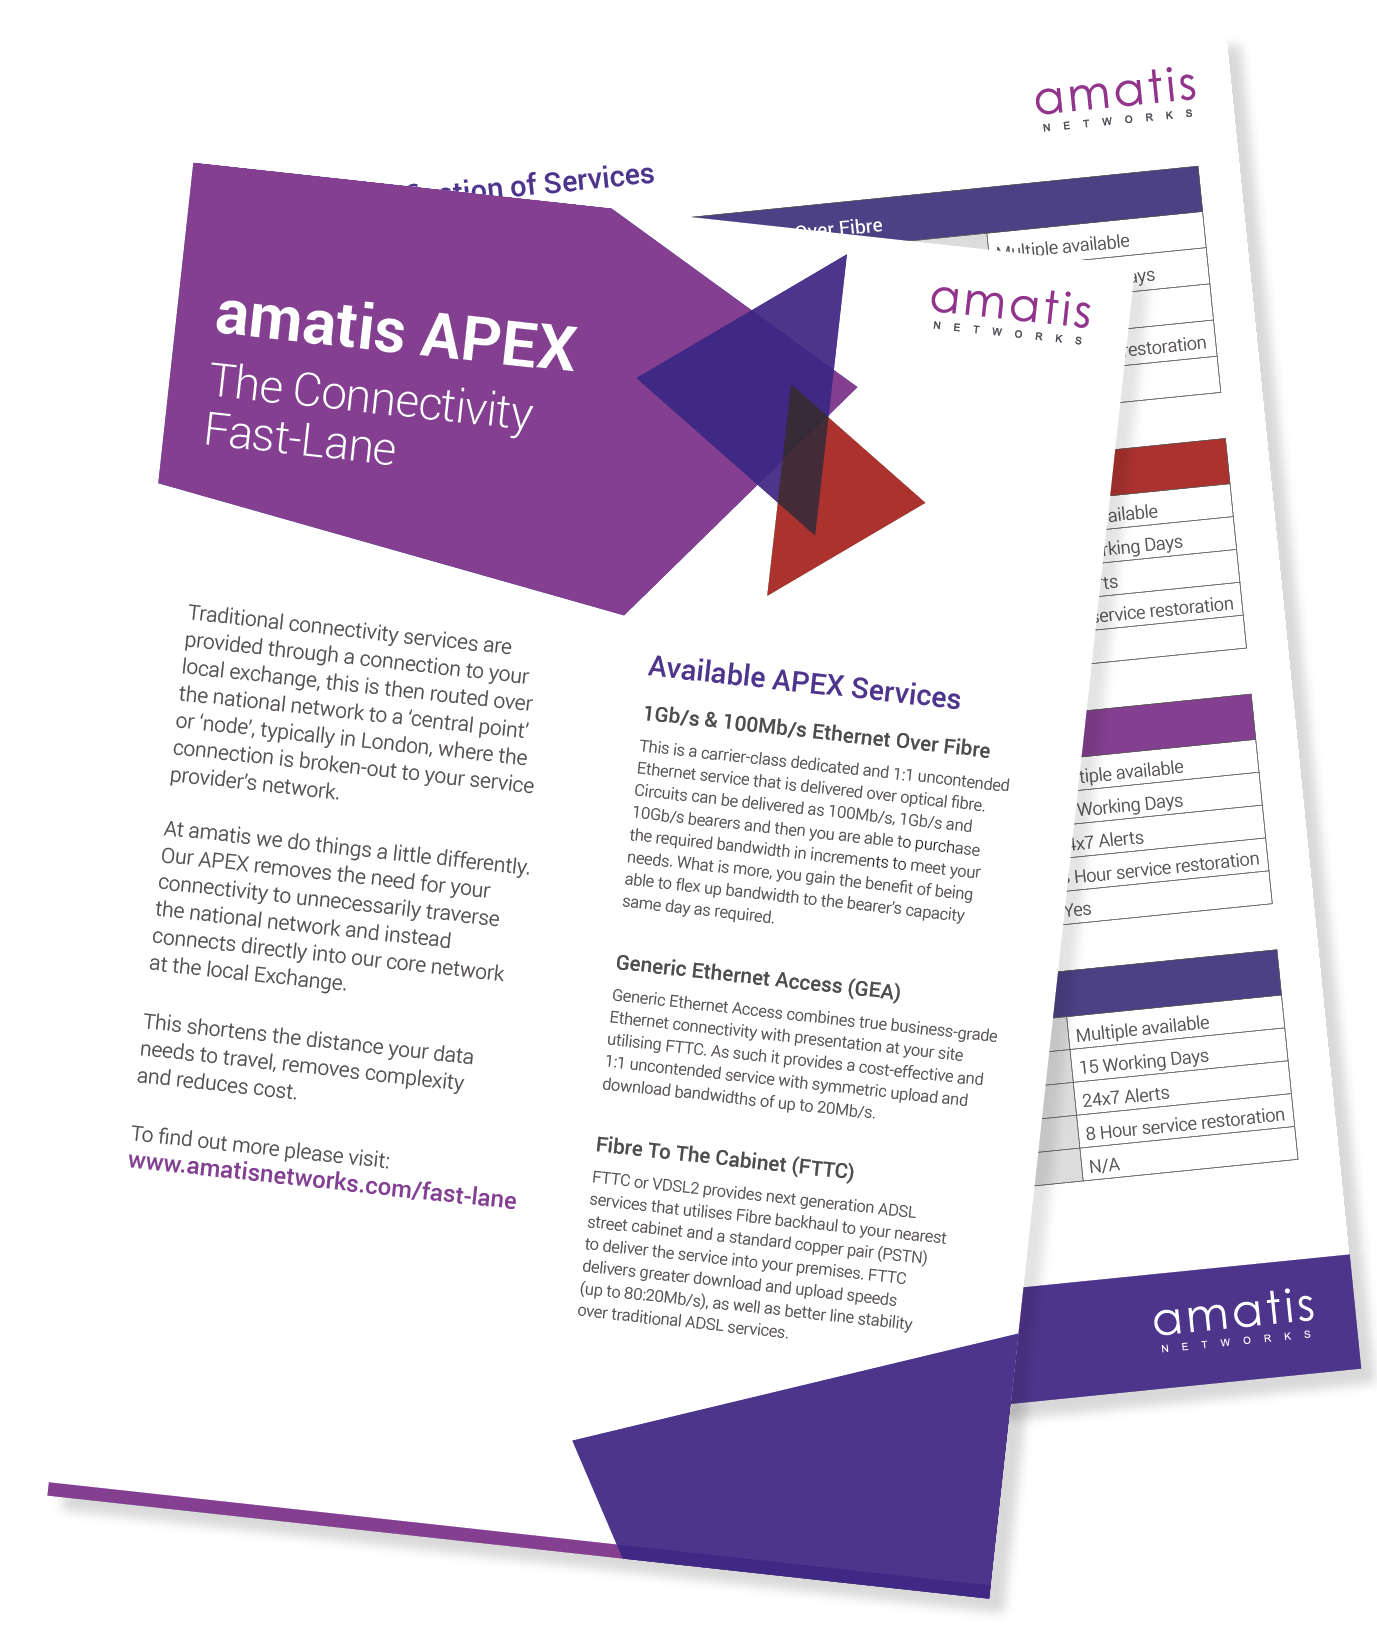 Ebook Amatis Networks APEX Connectivity